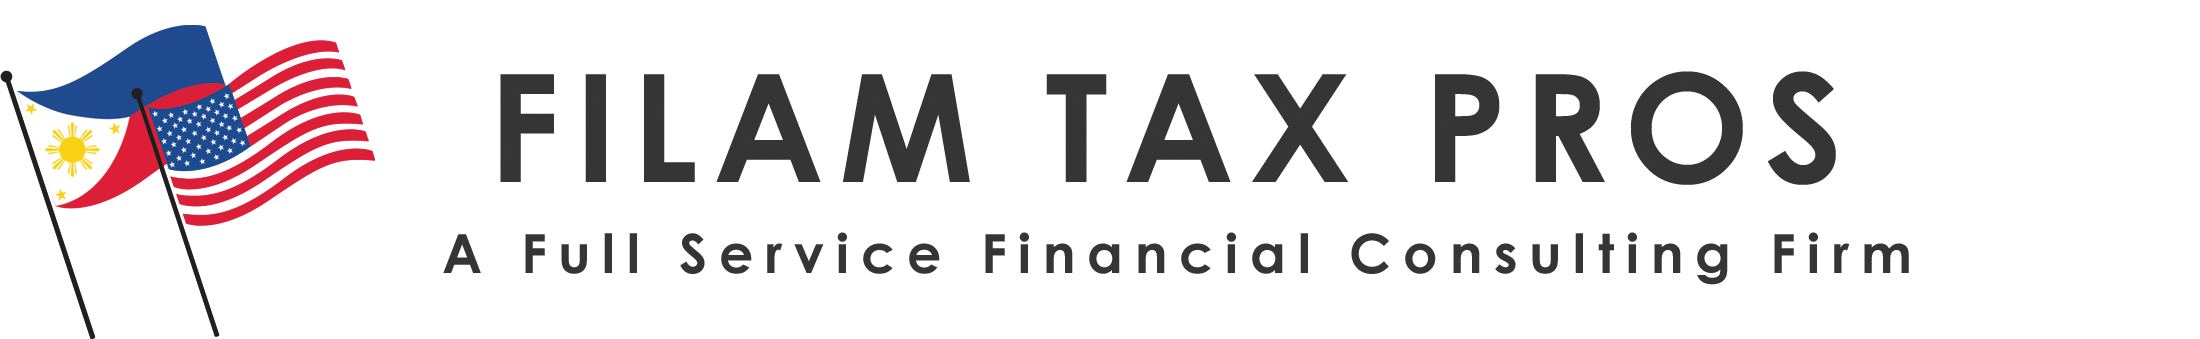 Filam Tax Pros - Las Vegas, NV / Tax & QuickBooks/Accounting Support Group